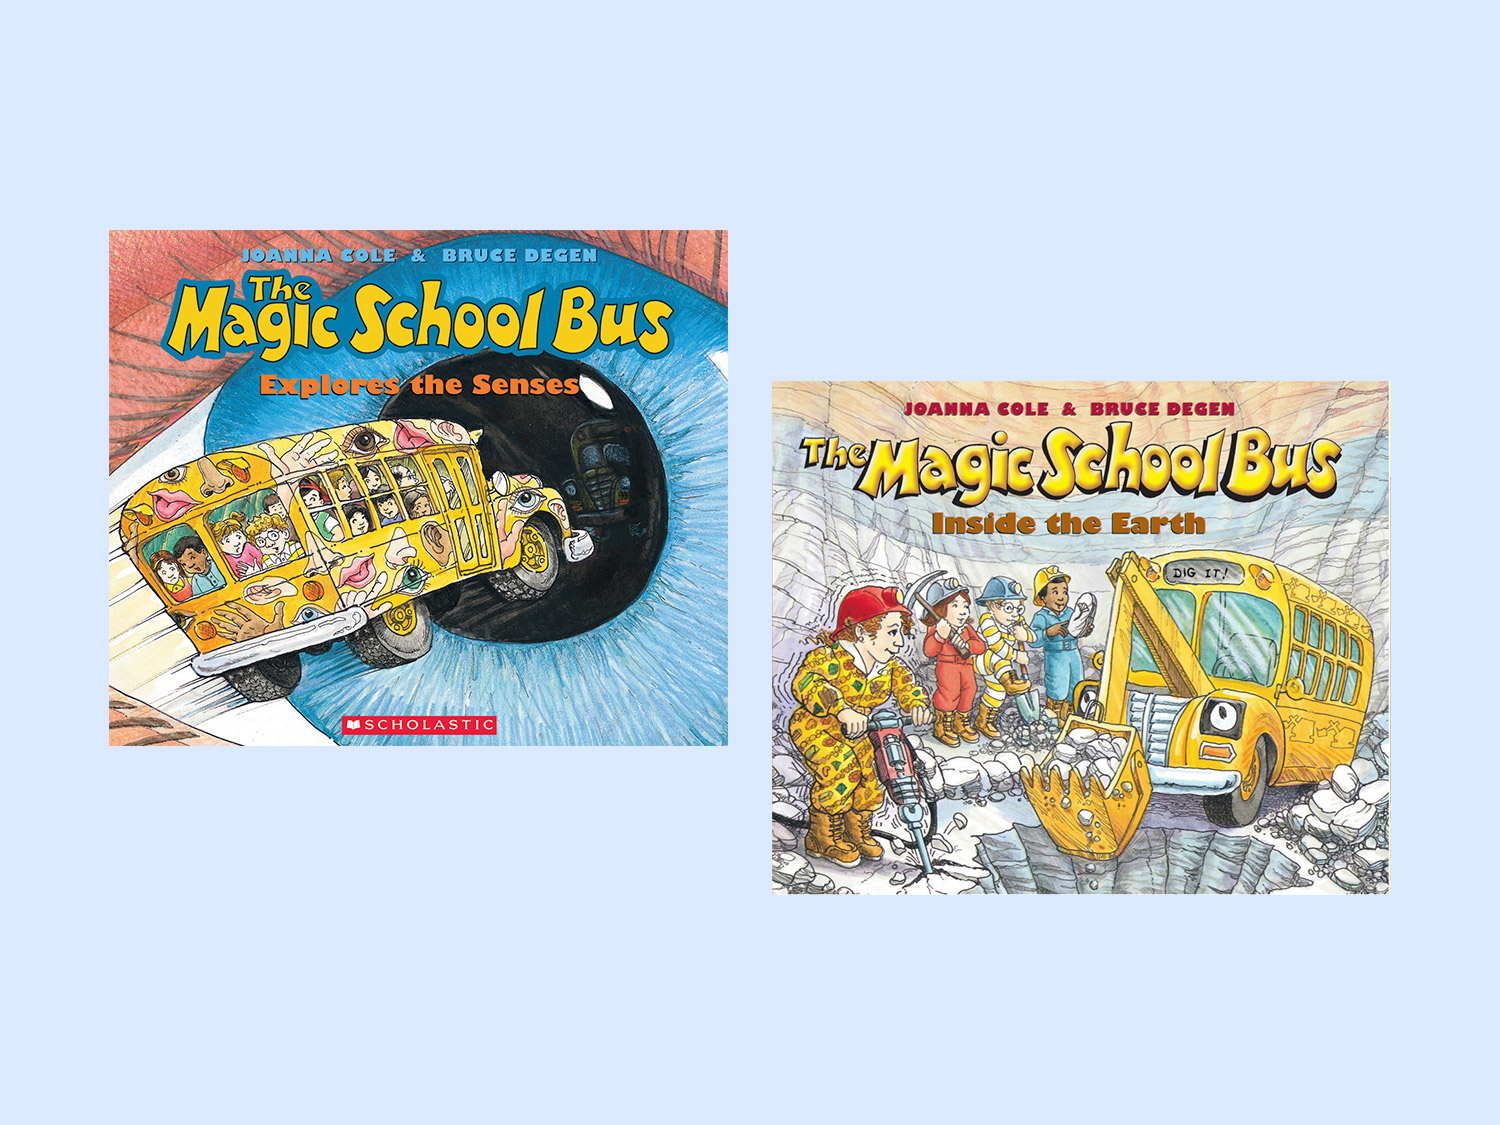 The Magic School Bus Classics